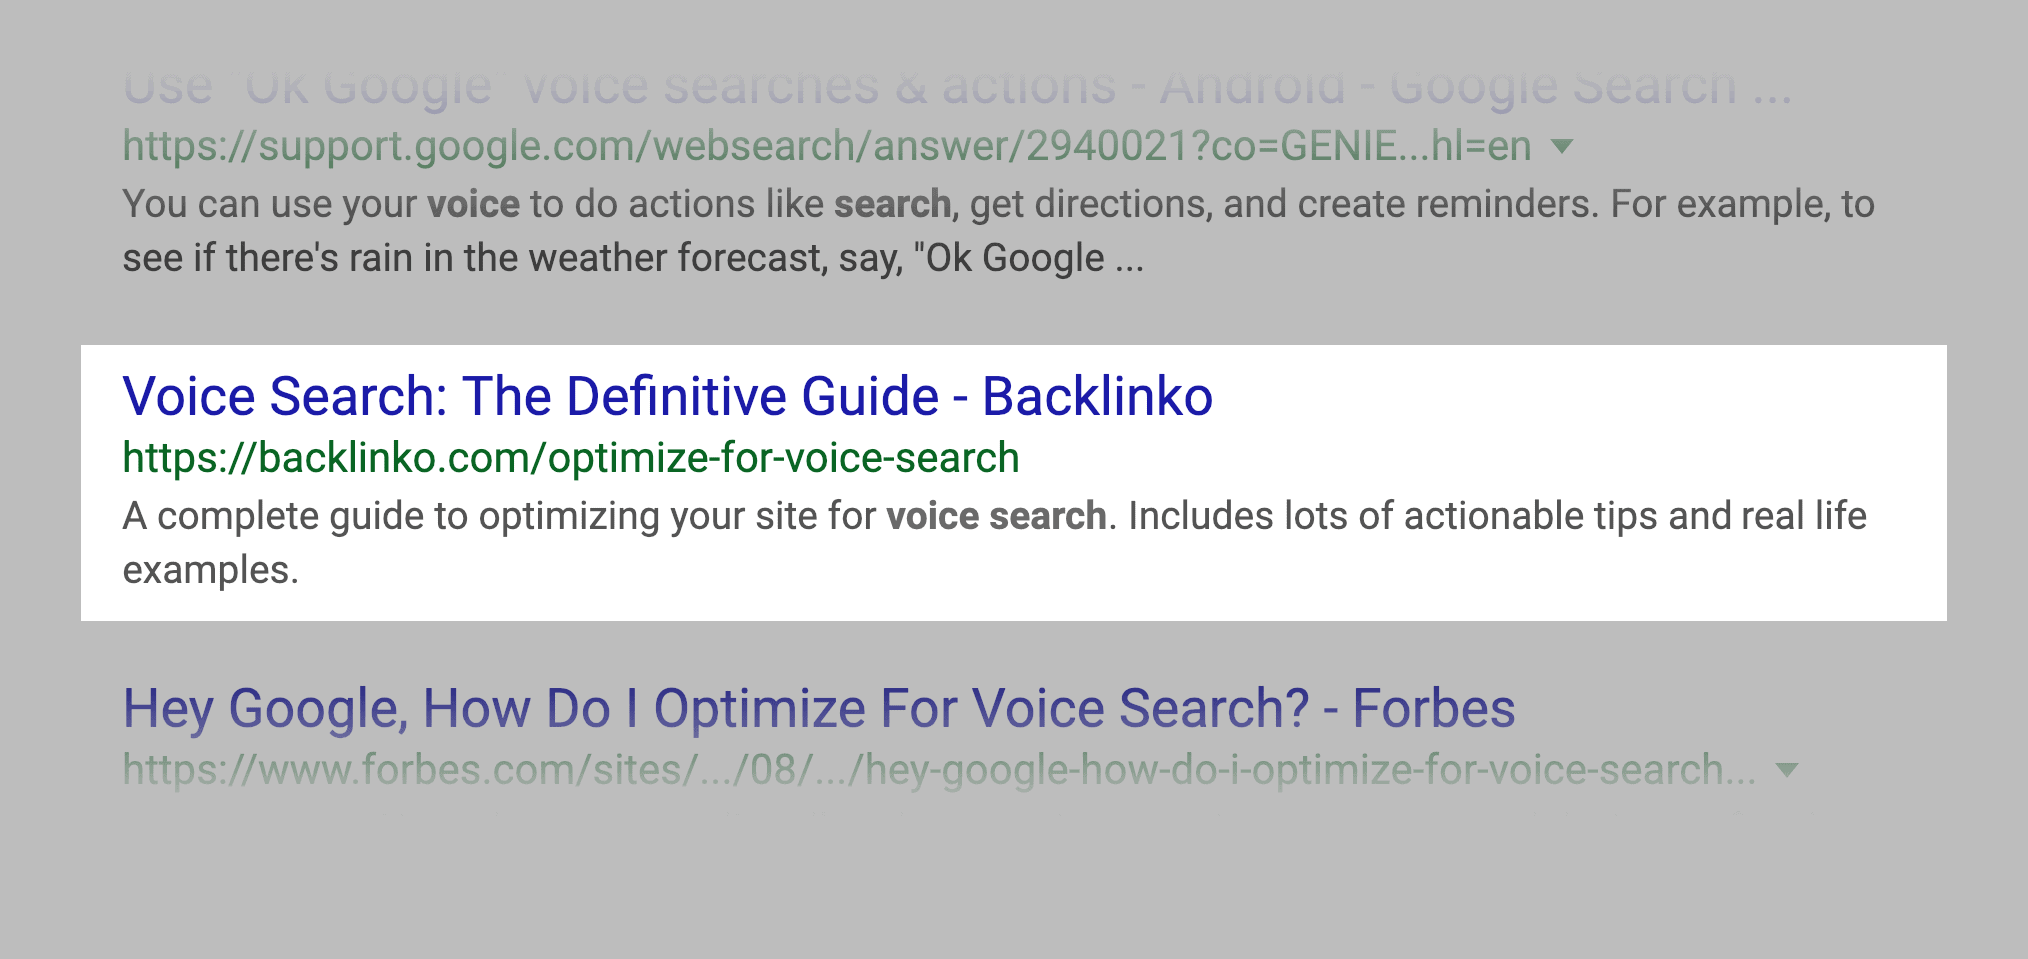 Normal Snippet In SERP